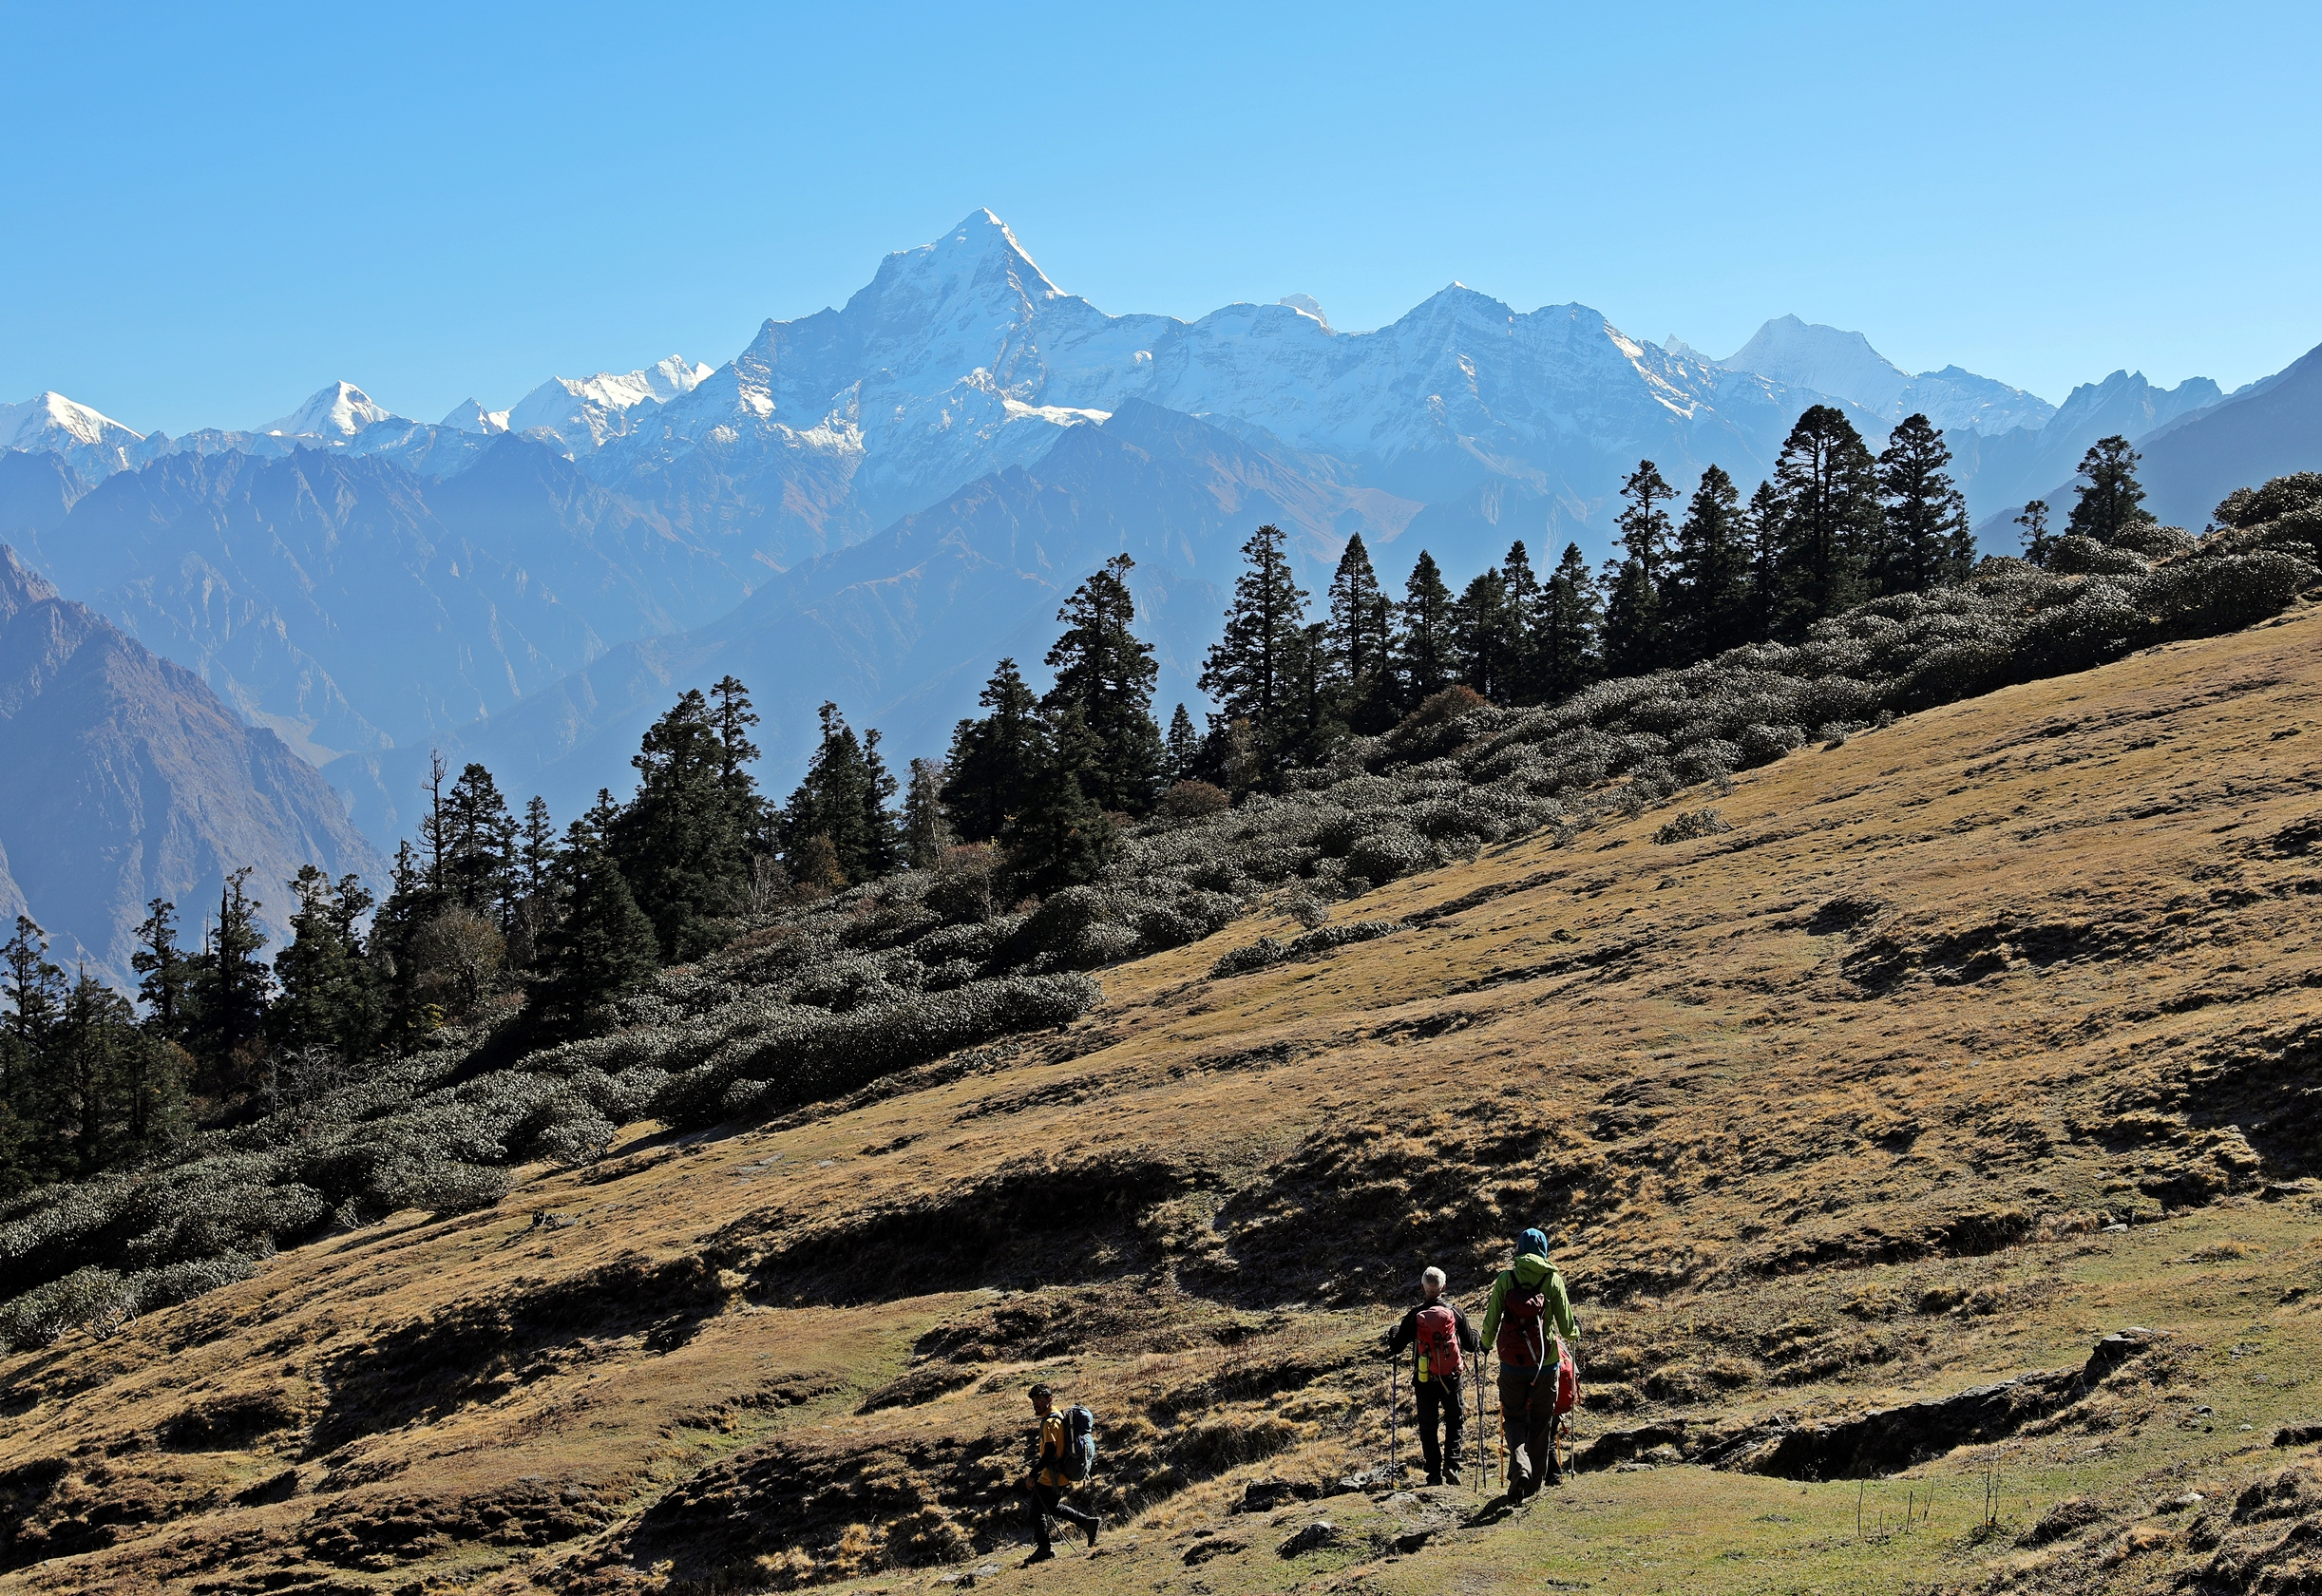 Nanda Devi and the Kuari Pass Trek